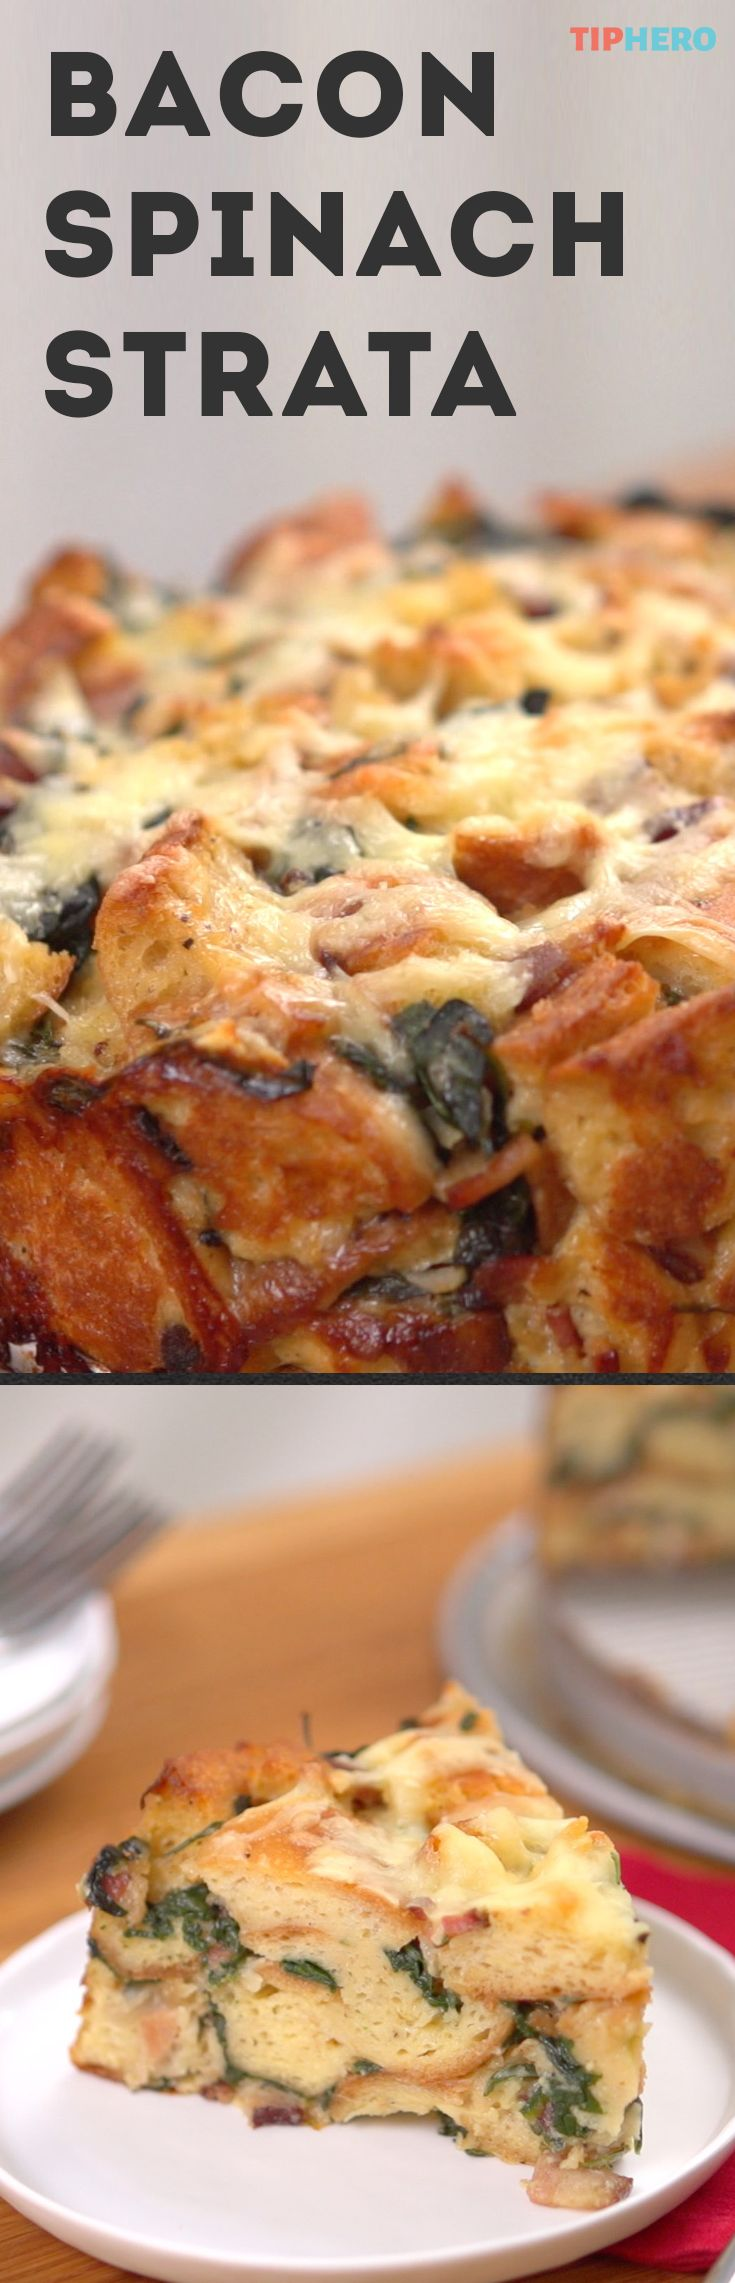 Bacon Spinach Strata Recipe | Looking for the perfect dish for Easter brunch? Try out this cheesy and savory strata. You can make it ahead of time and it's packed full of ingredients every will love like bacon, onion, spinach, rustic bread, eggs and cheddar cheese. #Yum! Click to watch how it's made and give it a try! #easyrecipes #makeaheadmeals #brunch #holidaycooking